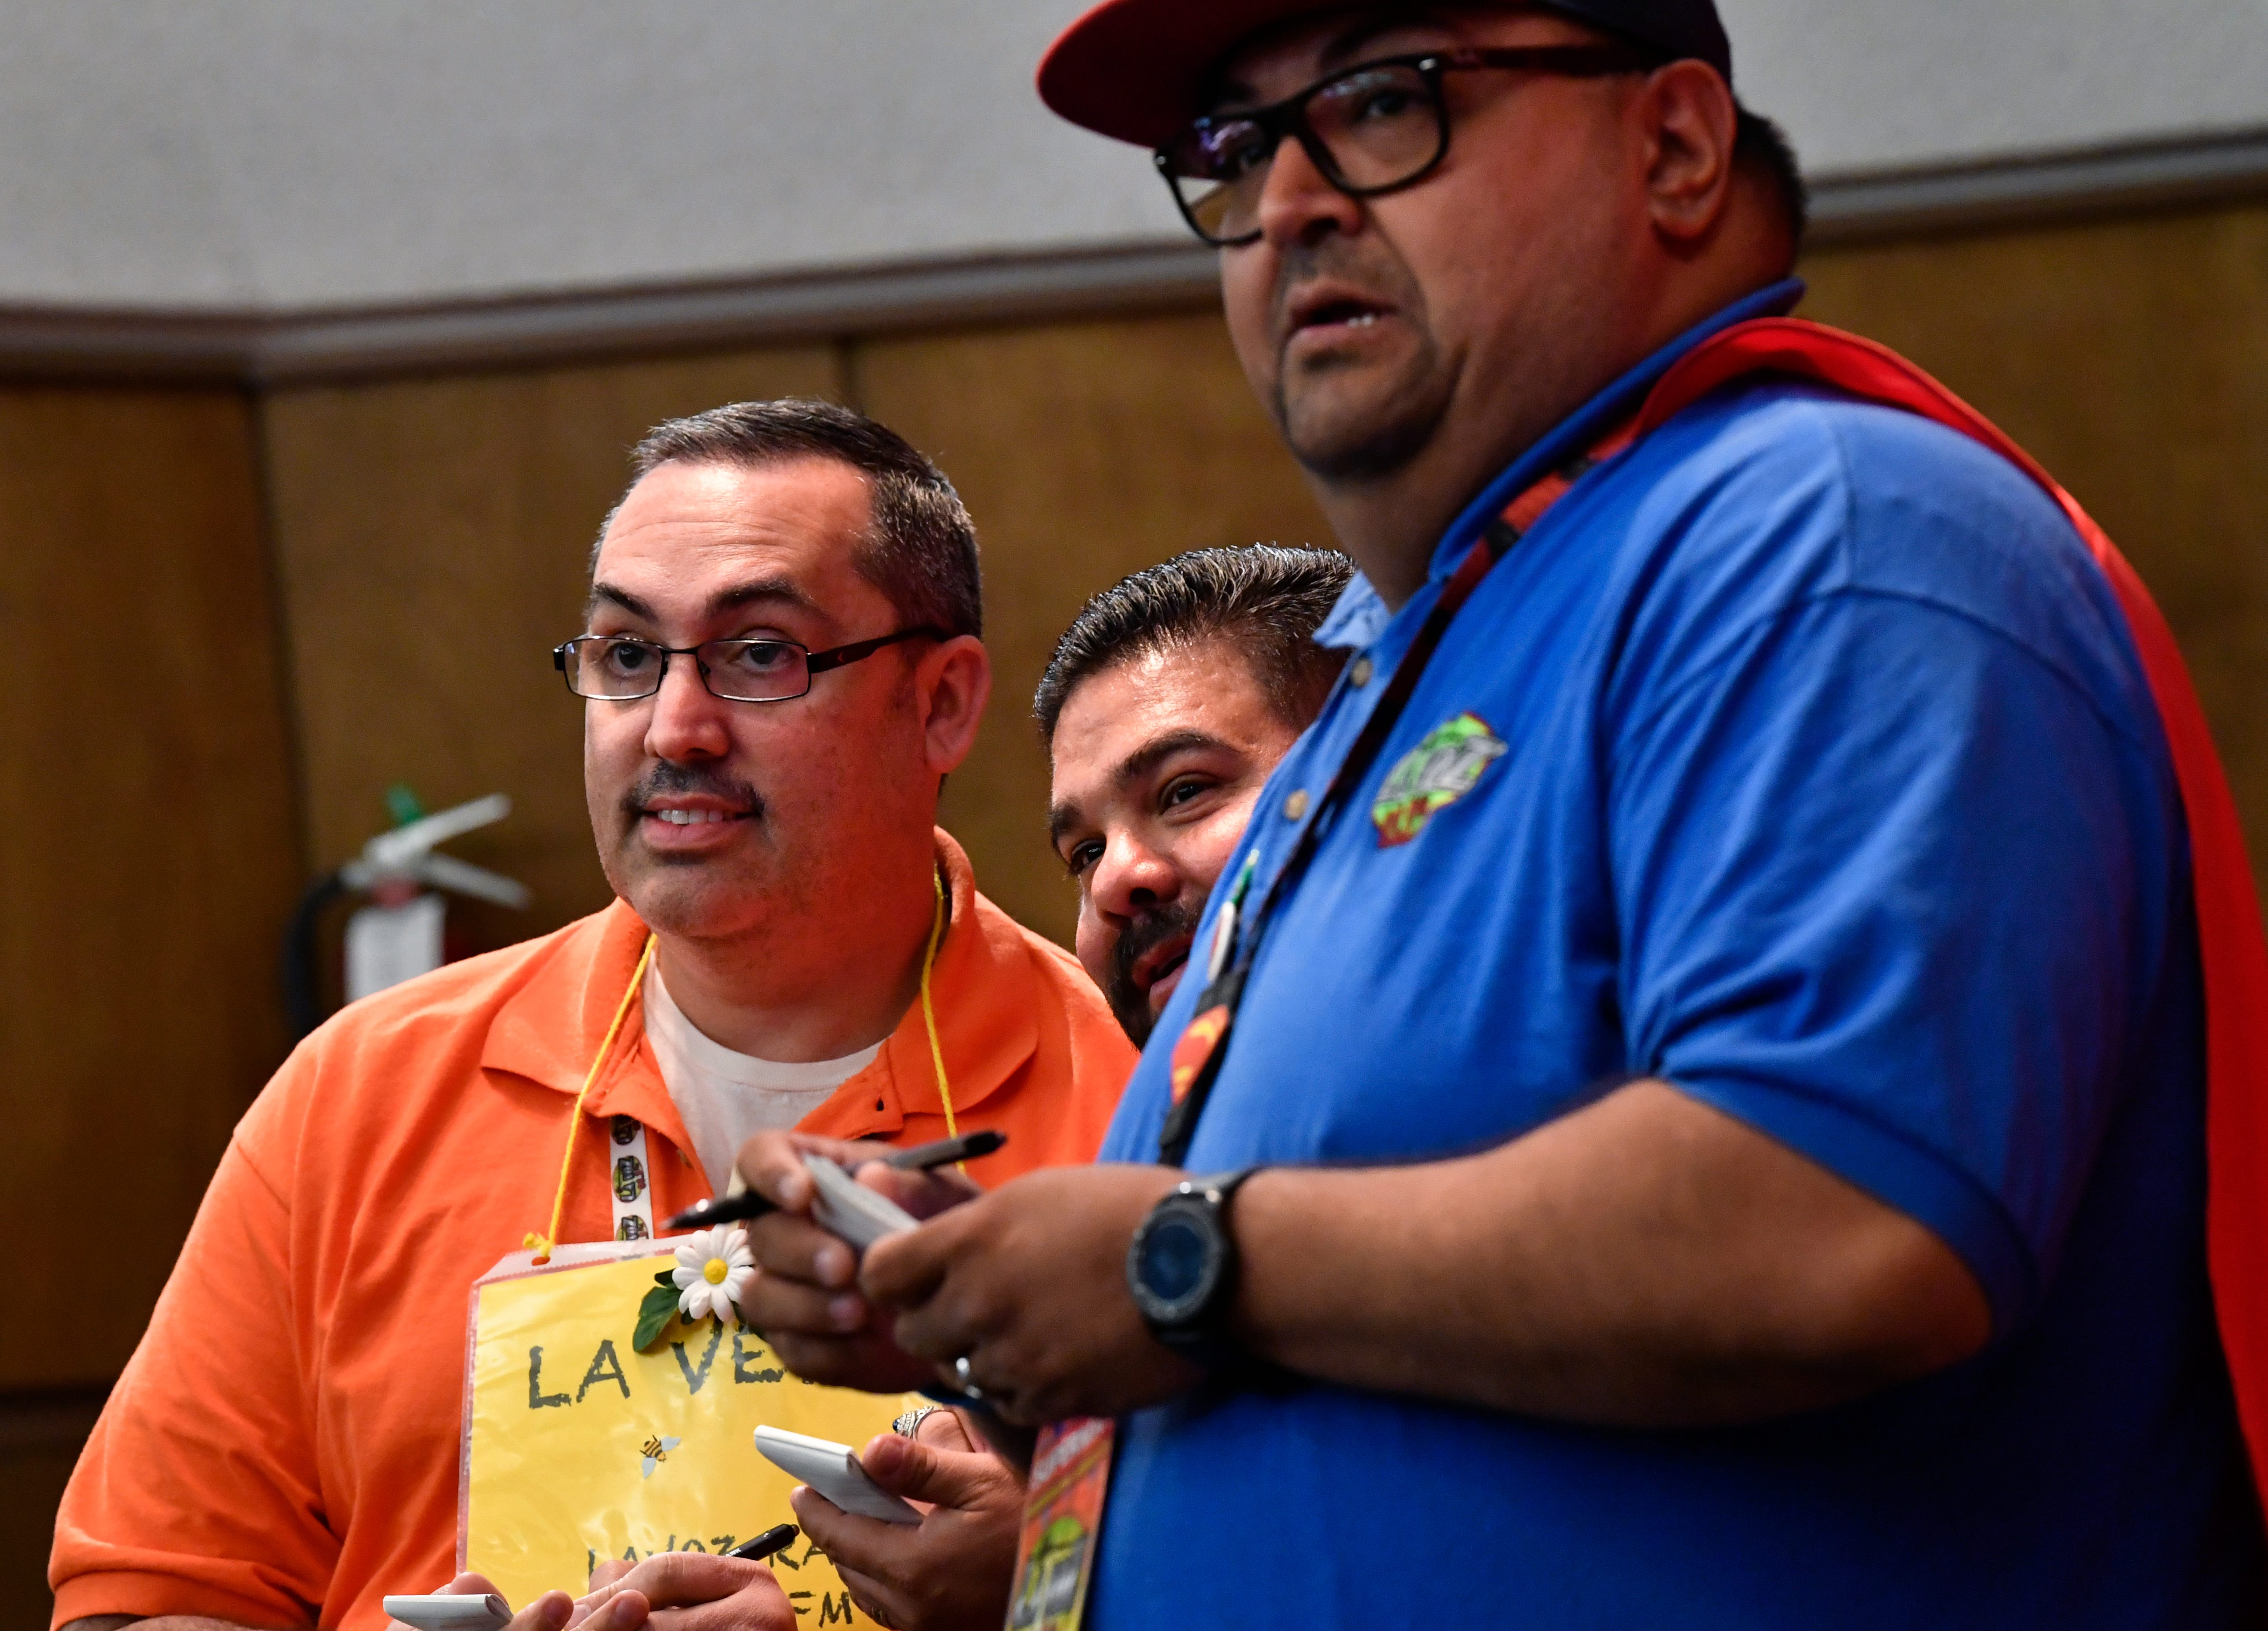 From left, Pete Garcia, Carlos Serna,and Superman Vizcaino from LaVoz radio listen to emcee George Levesque repeat a medical term for them to spell.